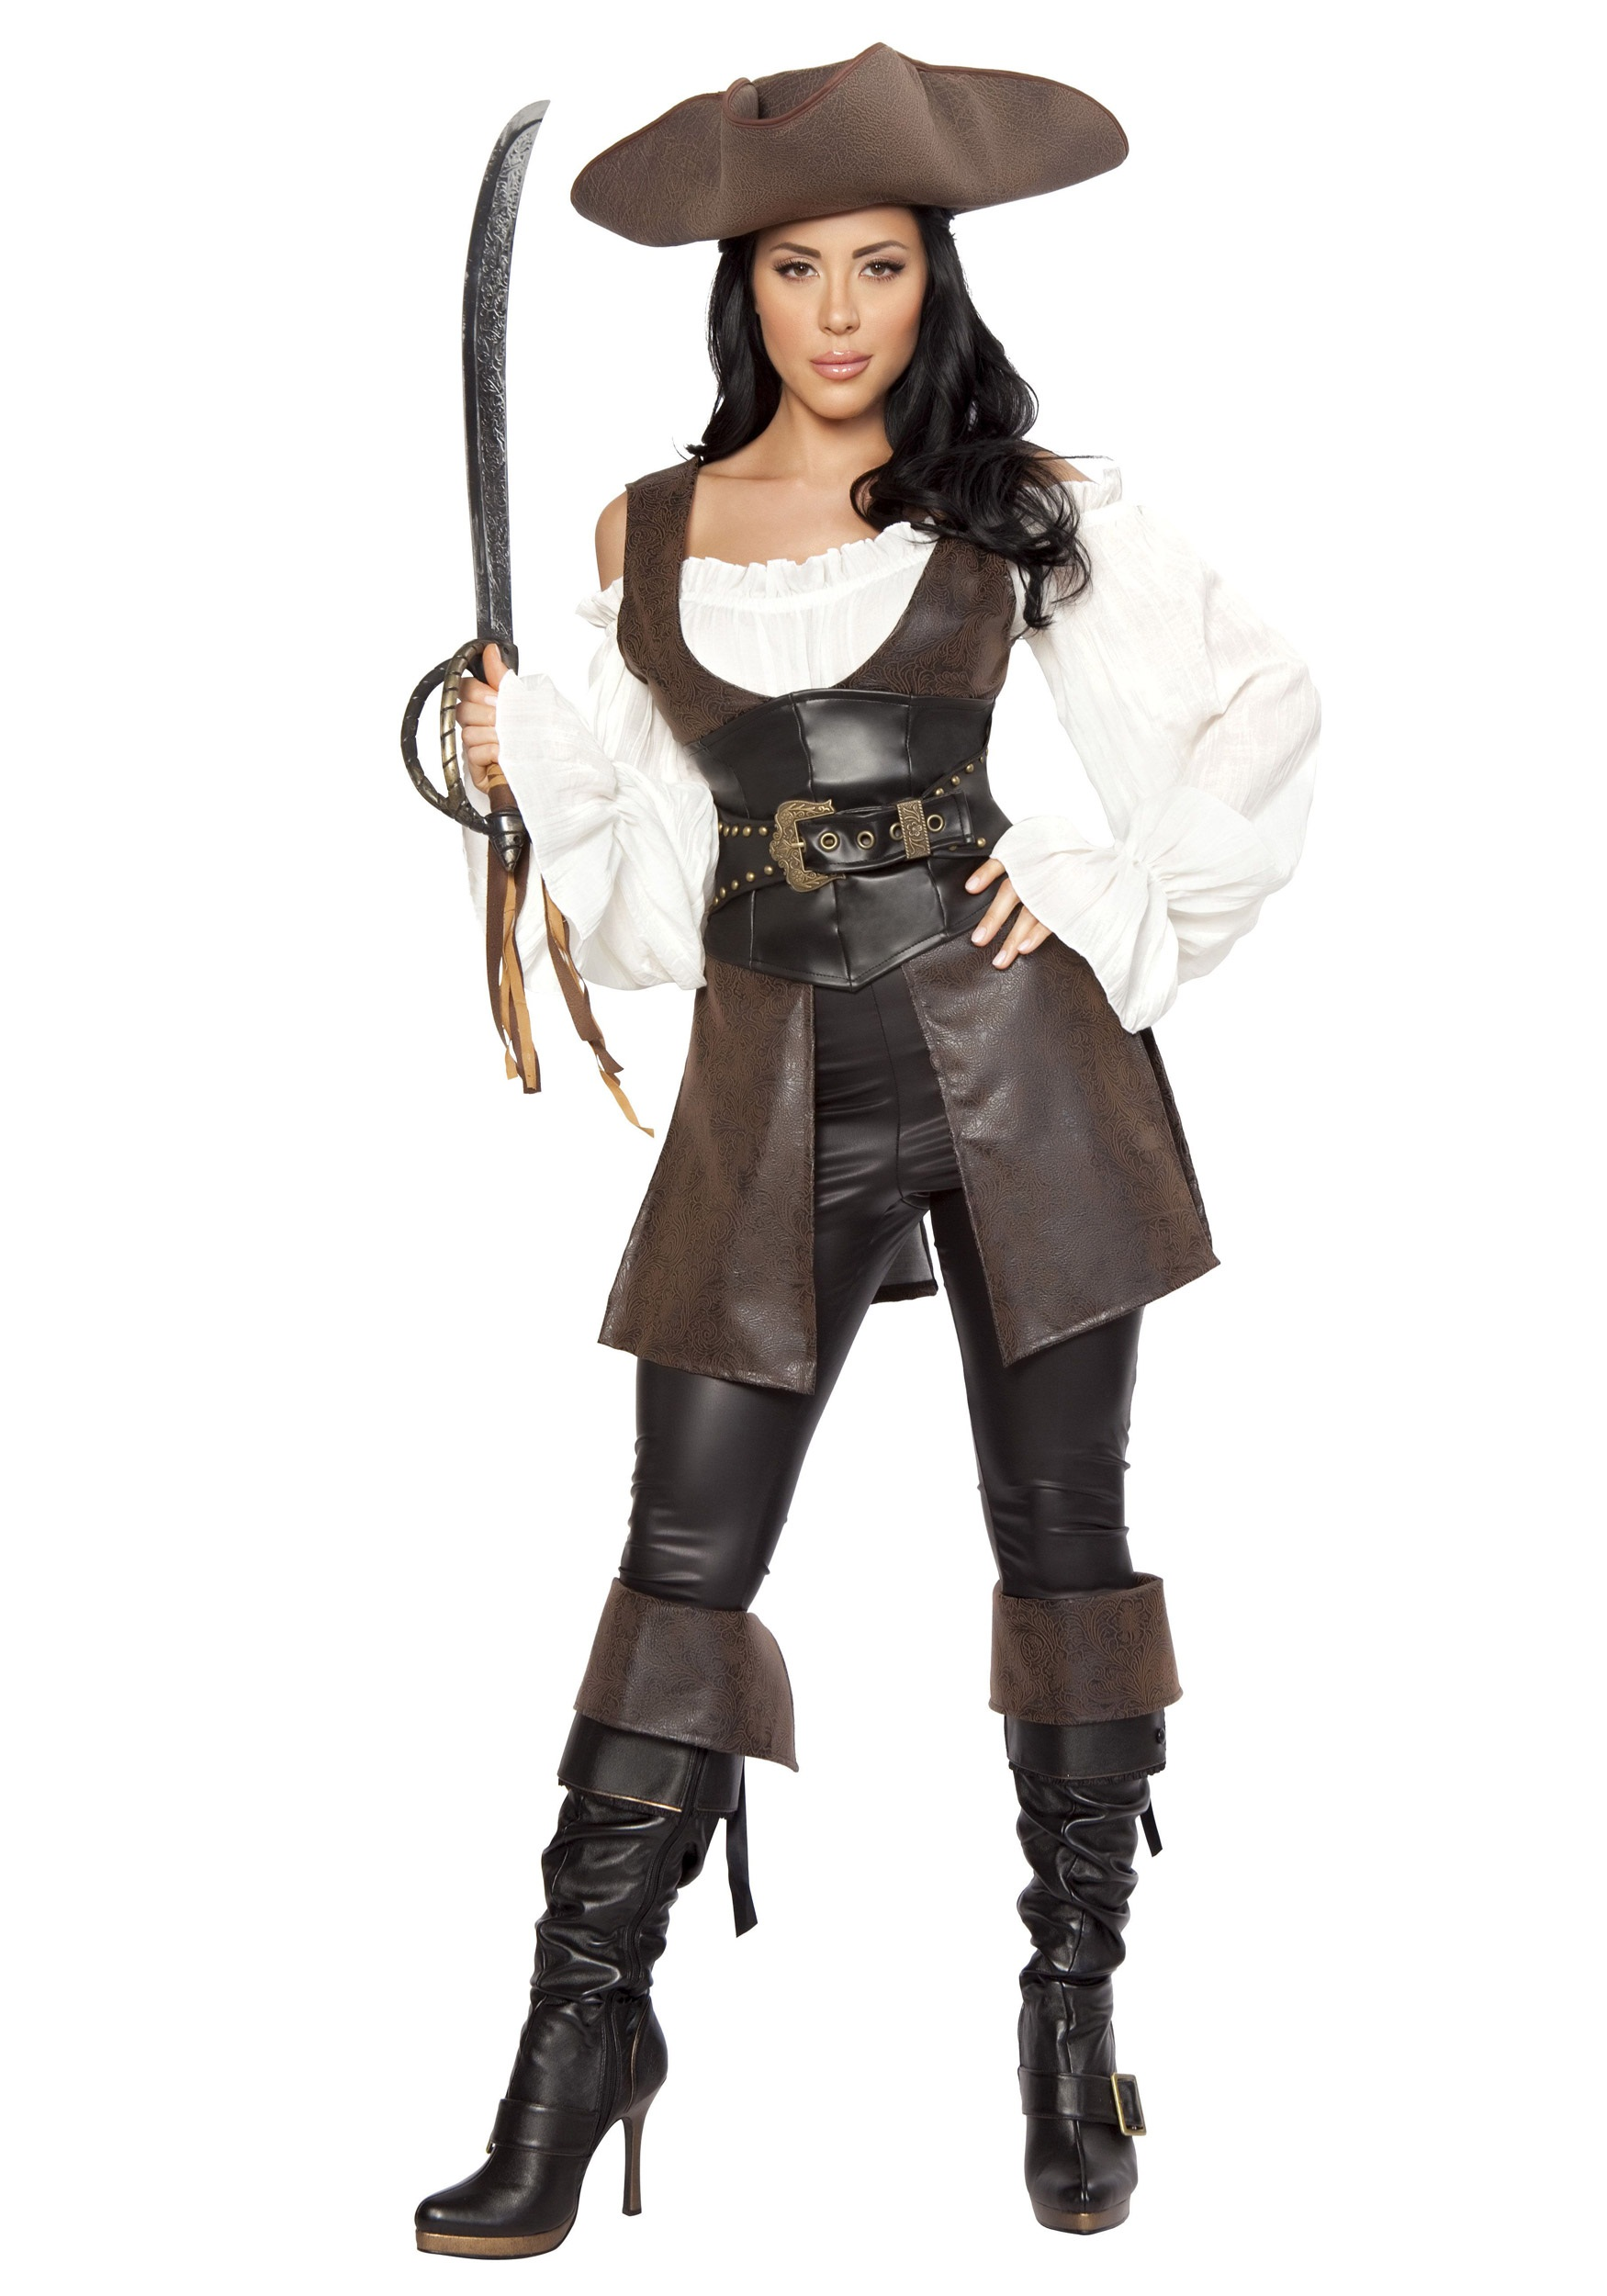 women 39 s deluxe swashbuckler costume. Black Bedroom Furniture Sets. Home Design Ideas